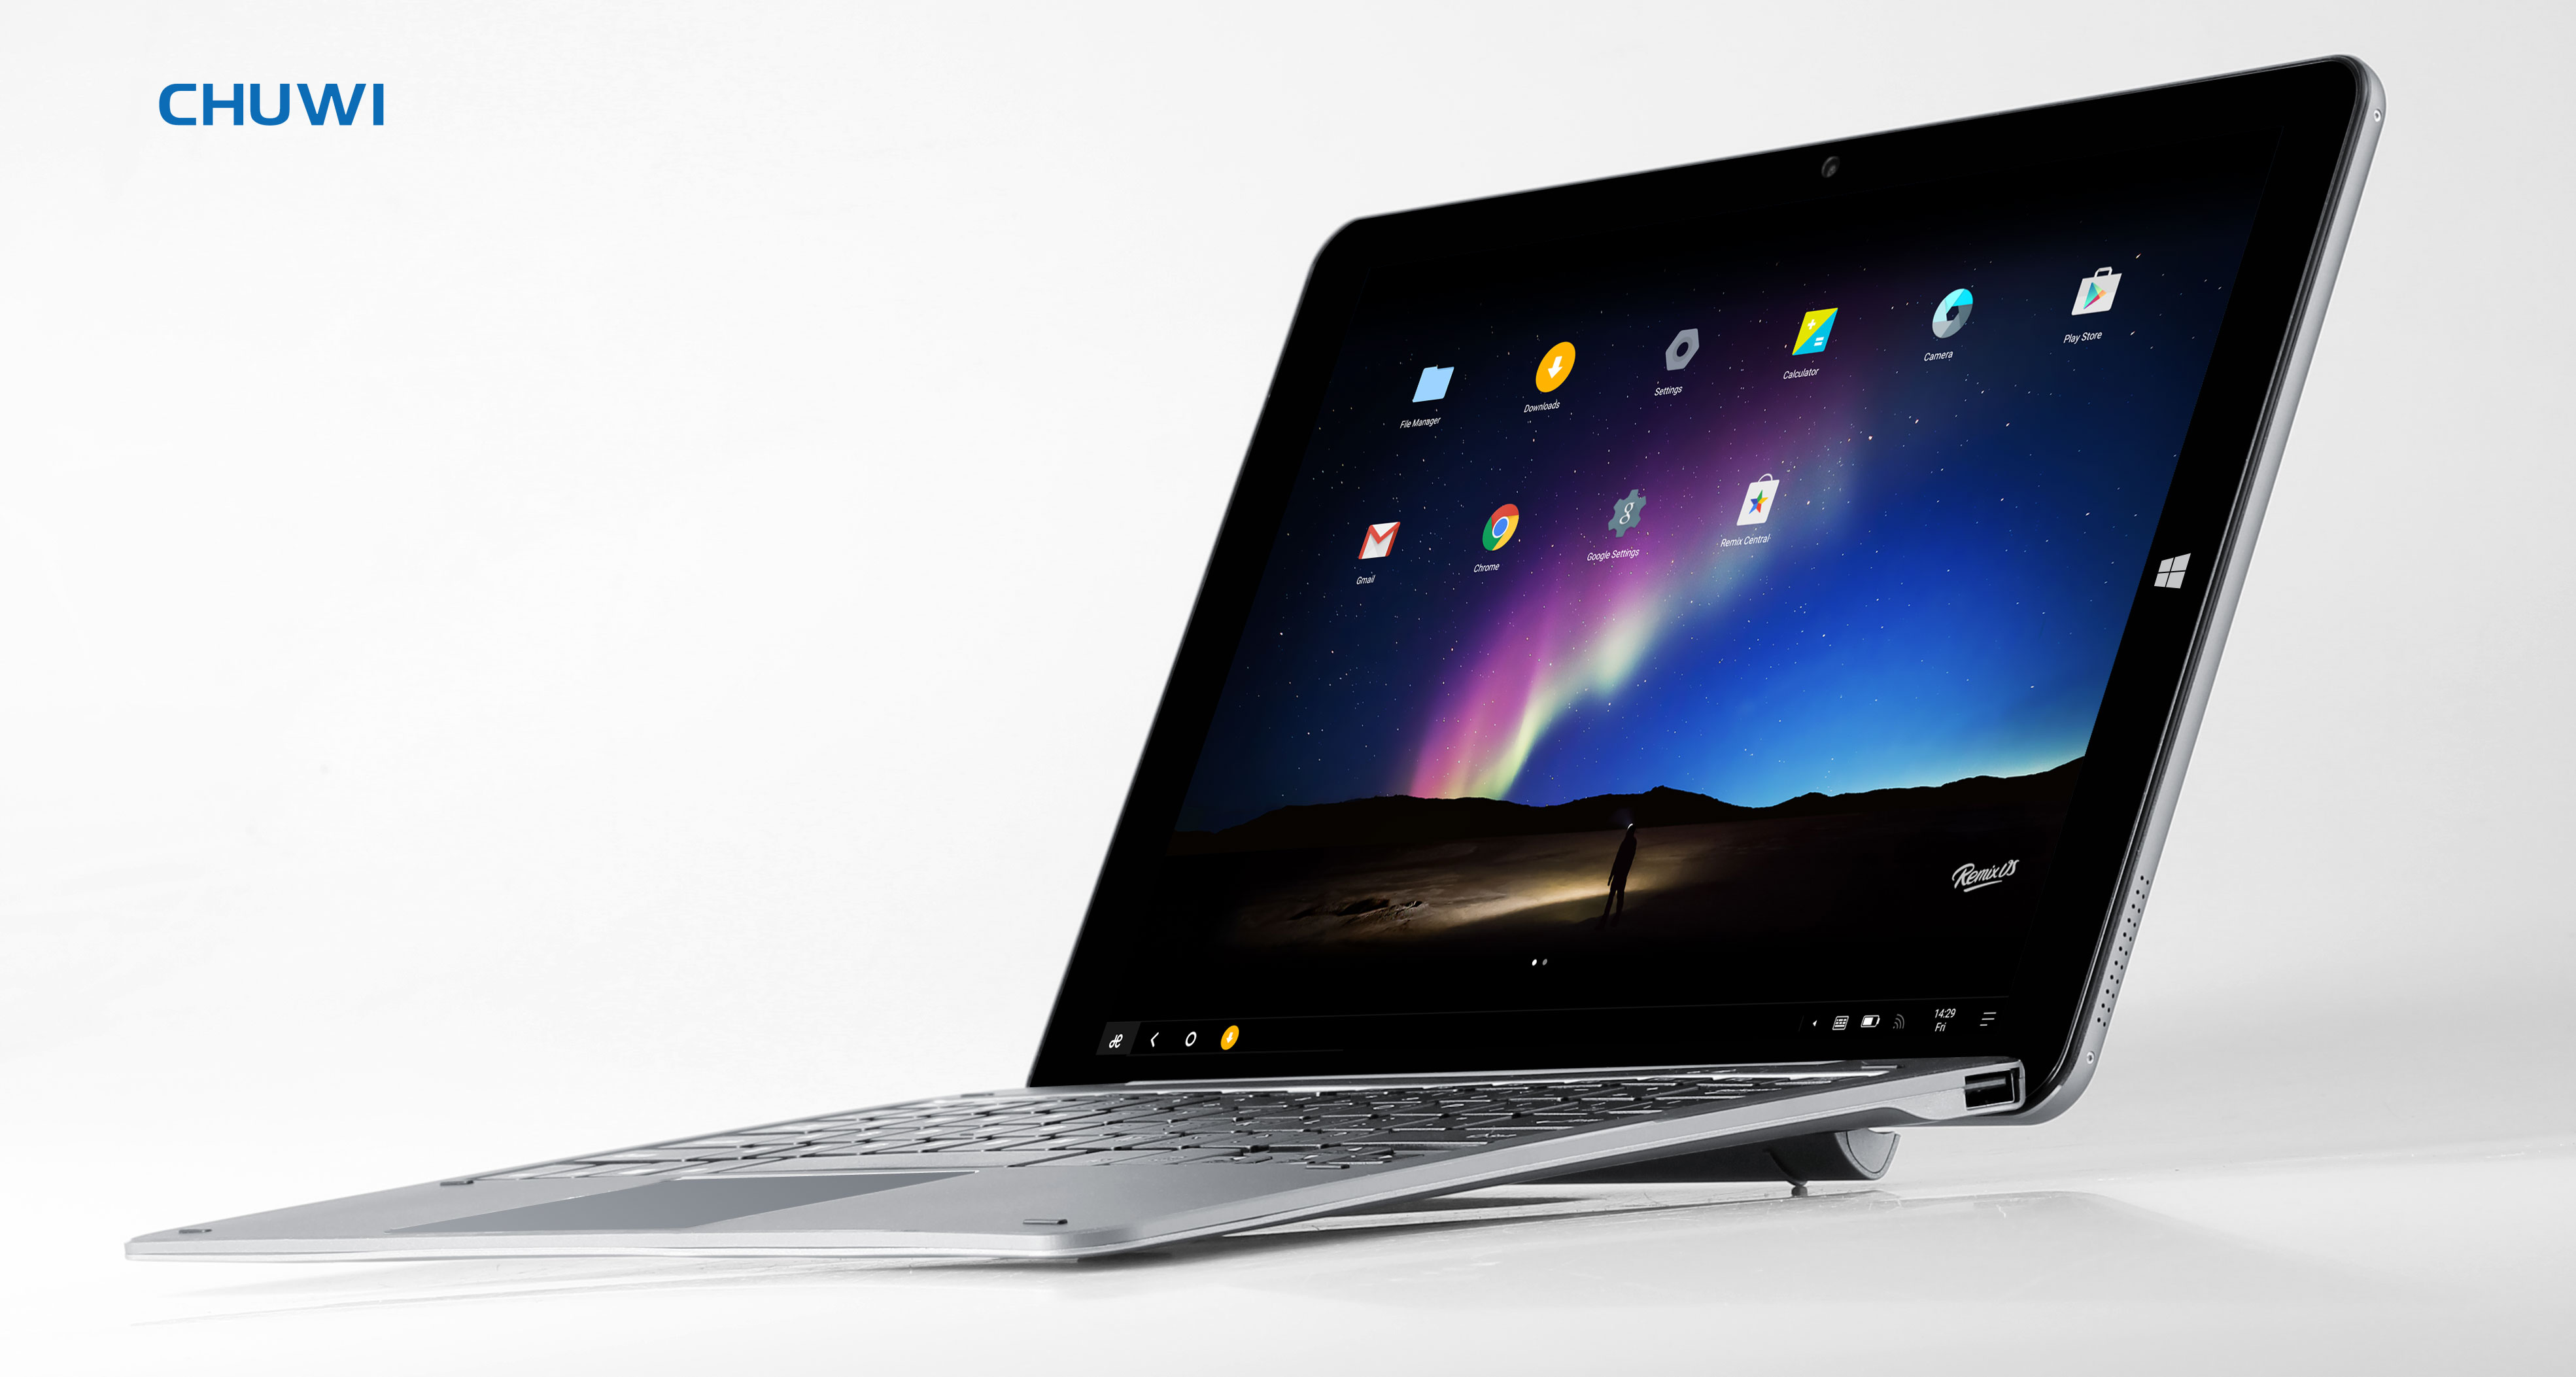 Chuwi Announced a Tablet With Remix OS